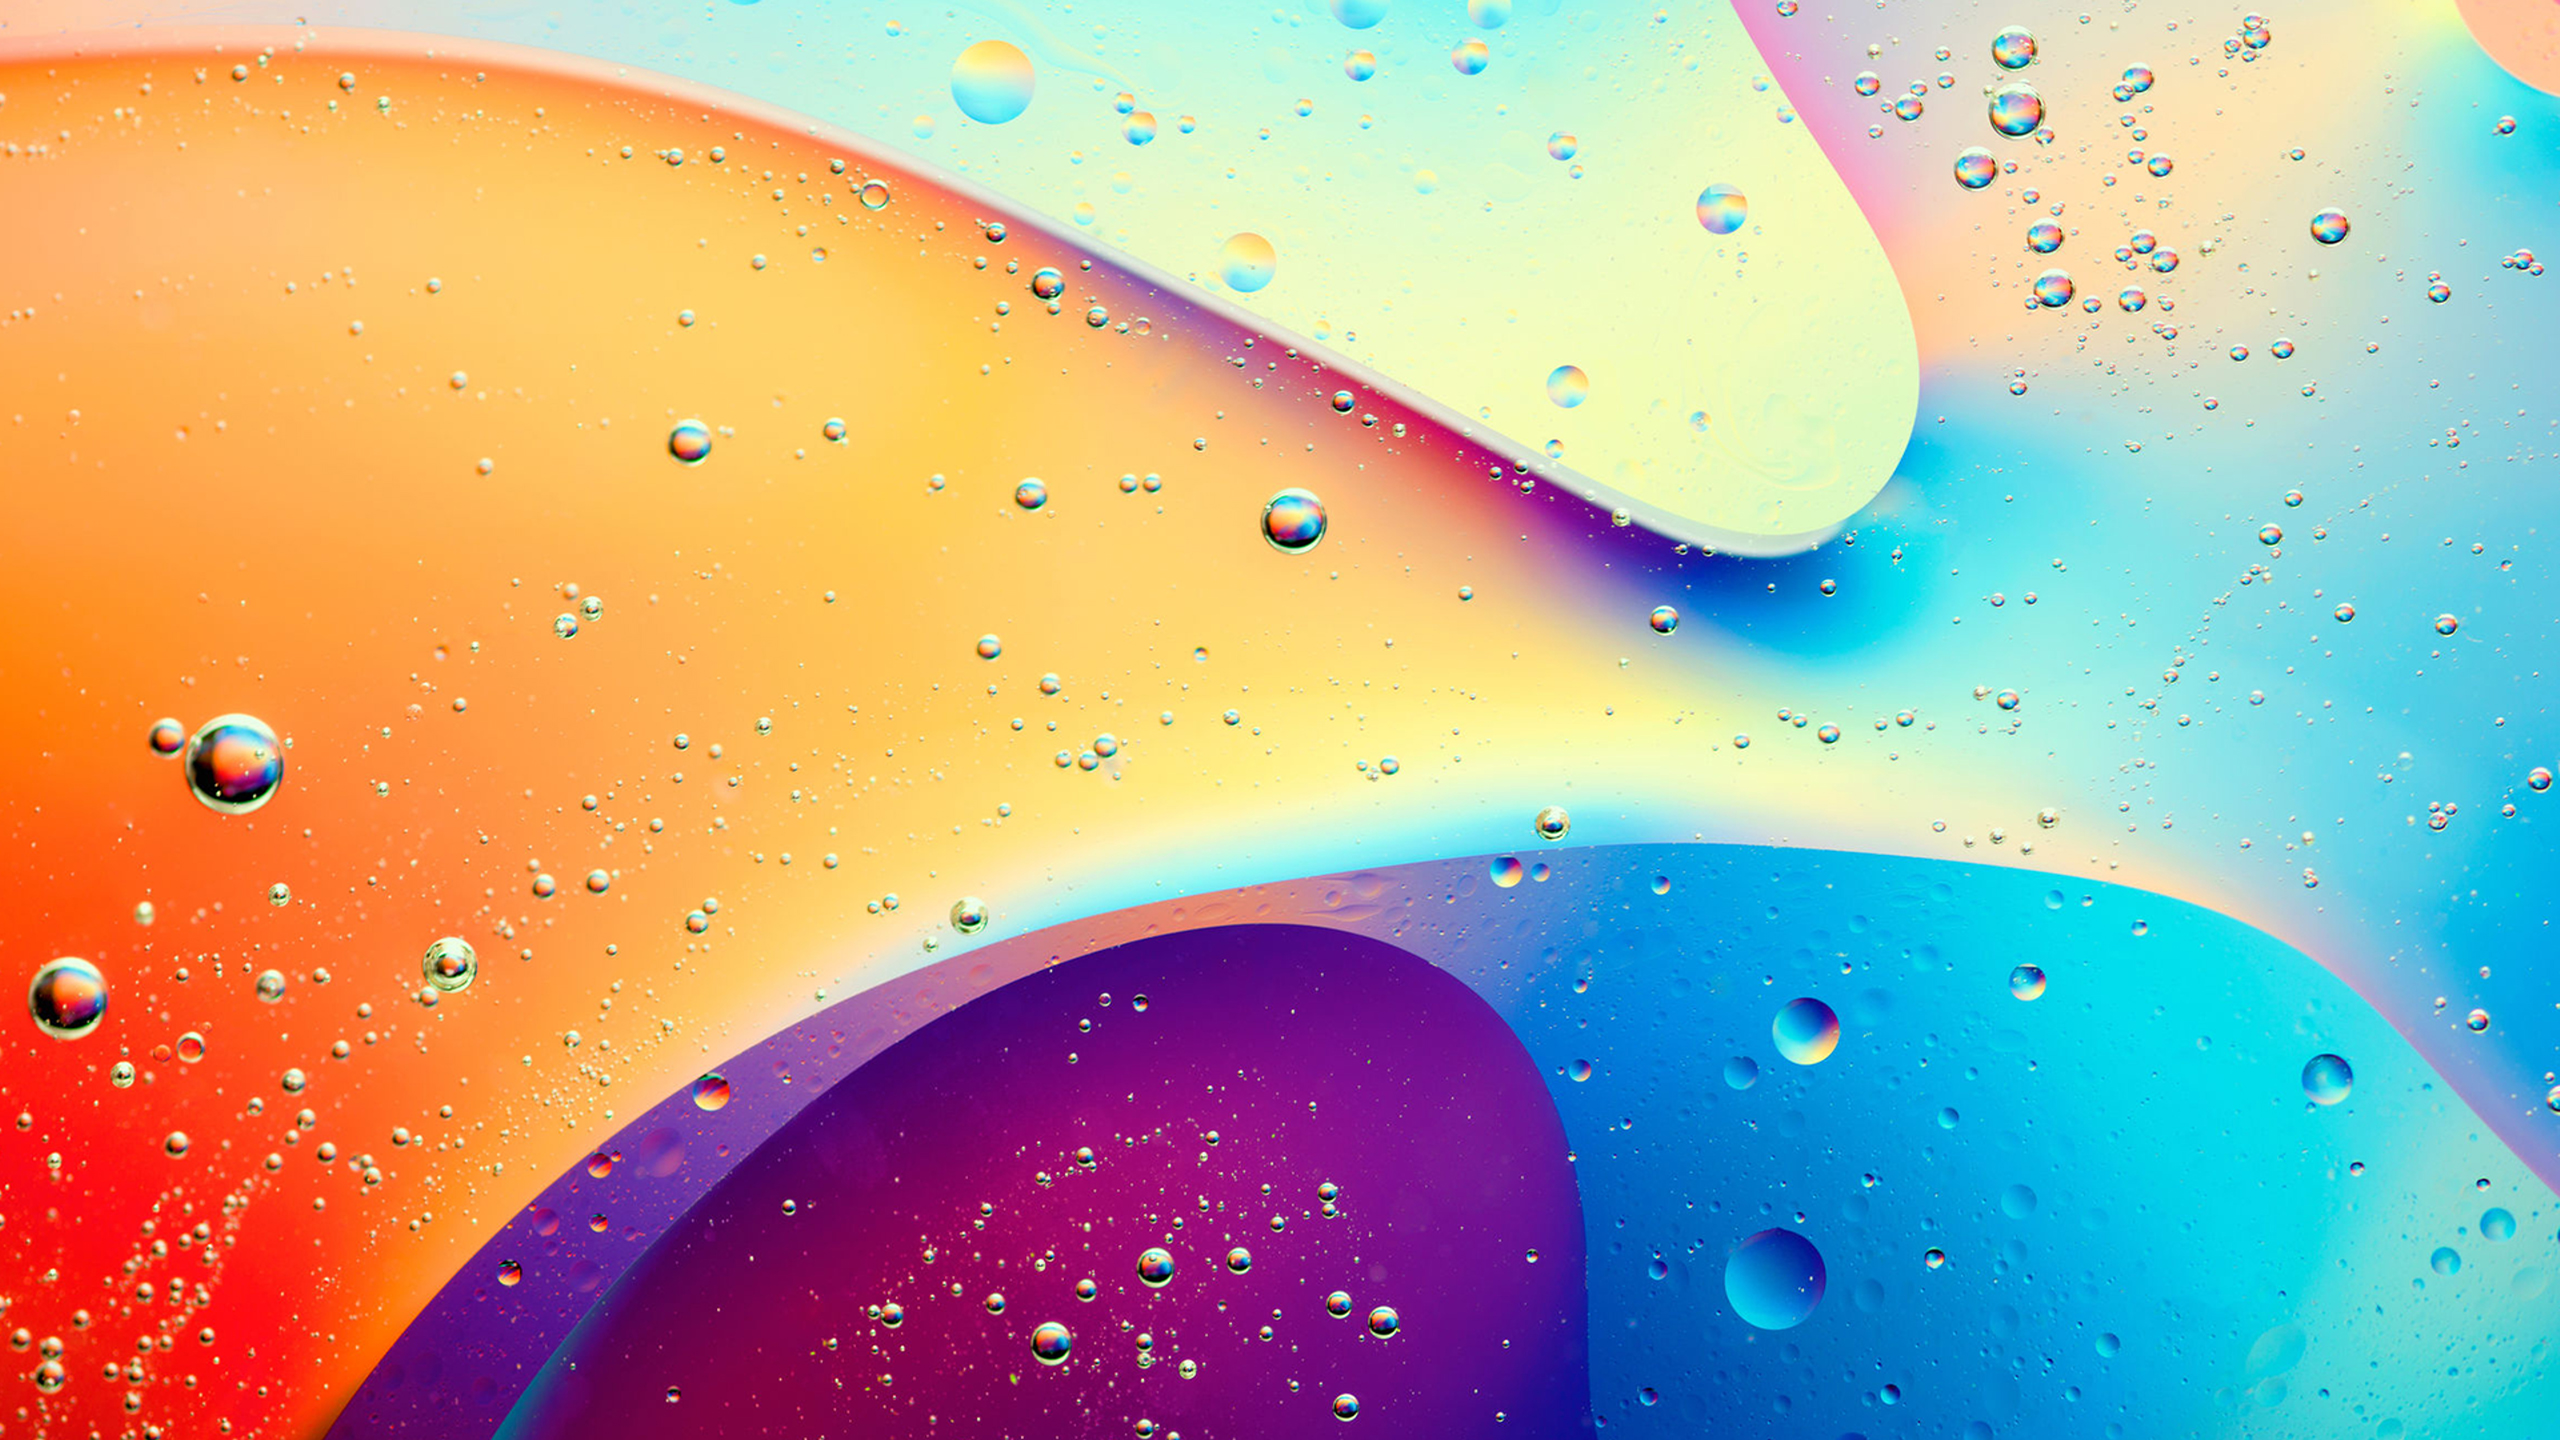 wallpaper 4k bubbles colorful gionee a1 stock bubbles colorful gionee stock wallpaper 4k bubbles colorful gionee a1